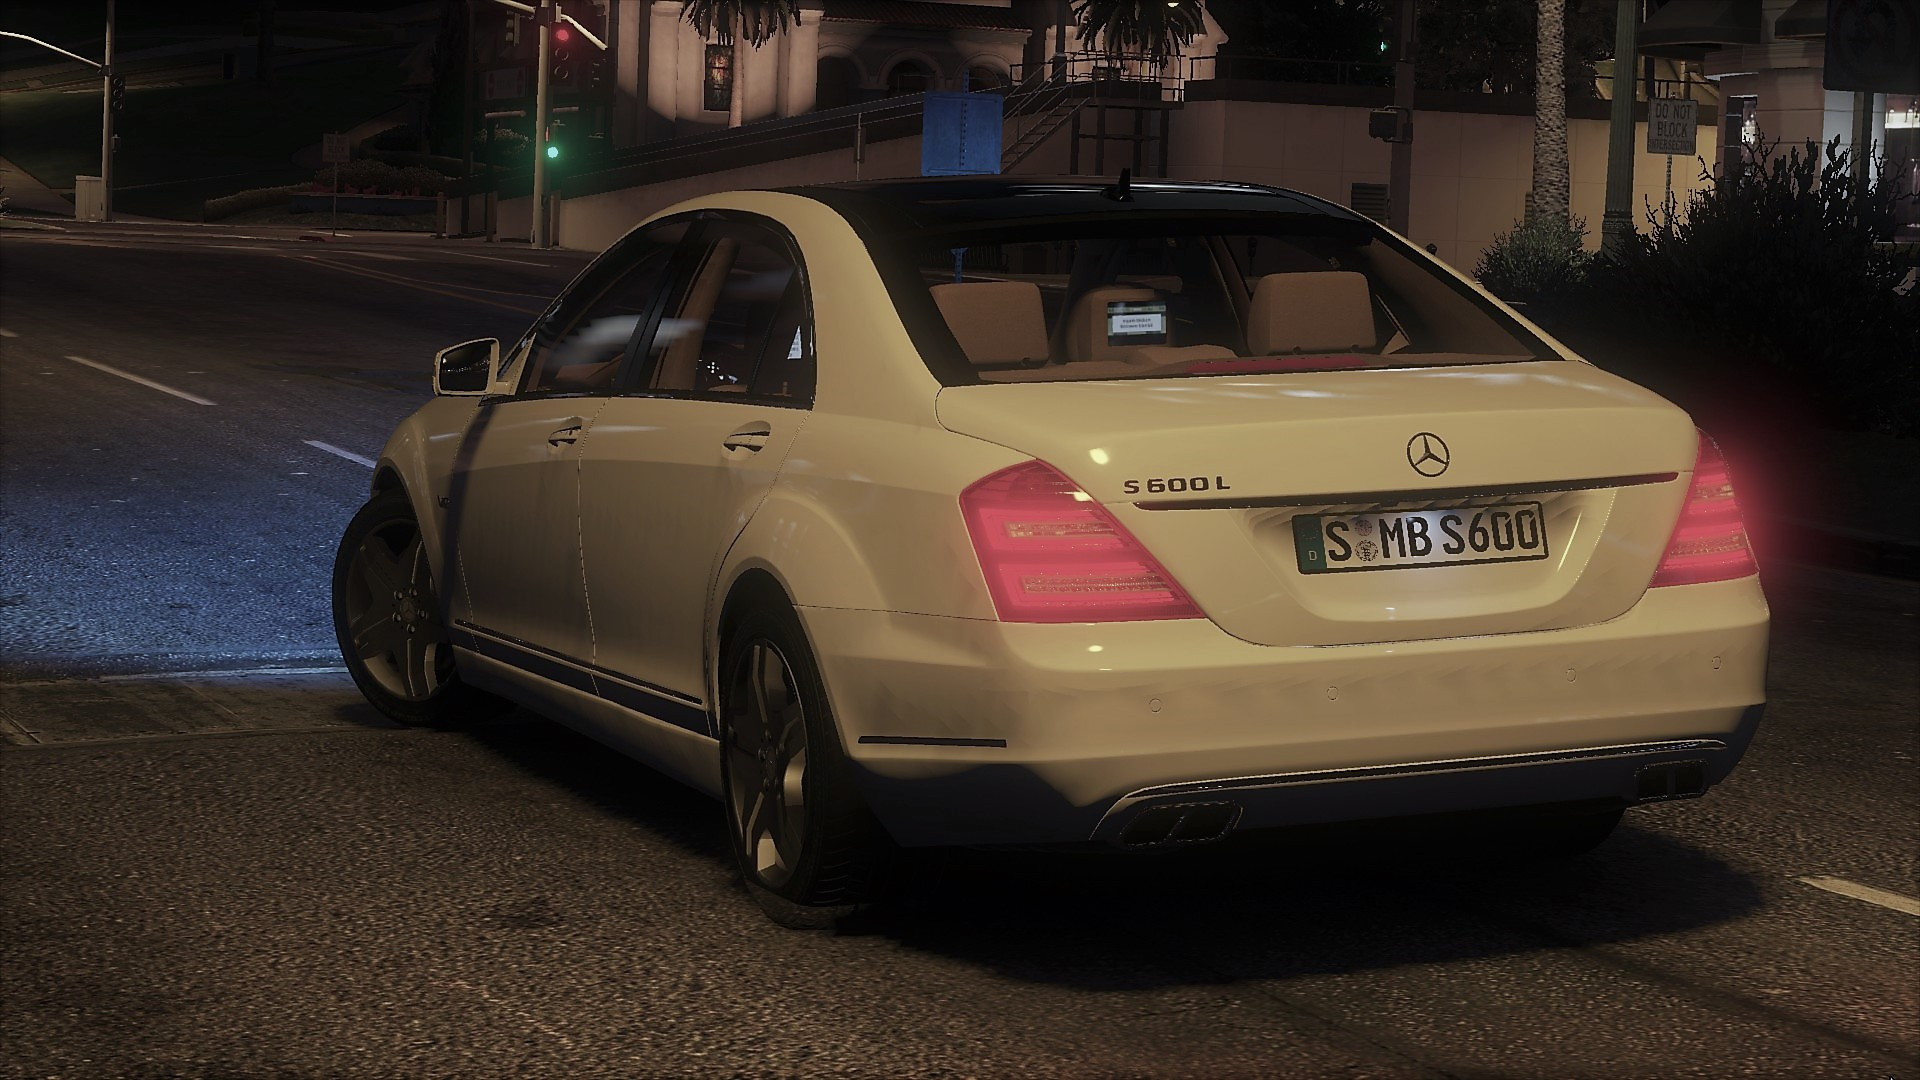 2010 mercedes benz s600 l w221 add on tuning gta5 for 2011 mercedes benz s600